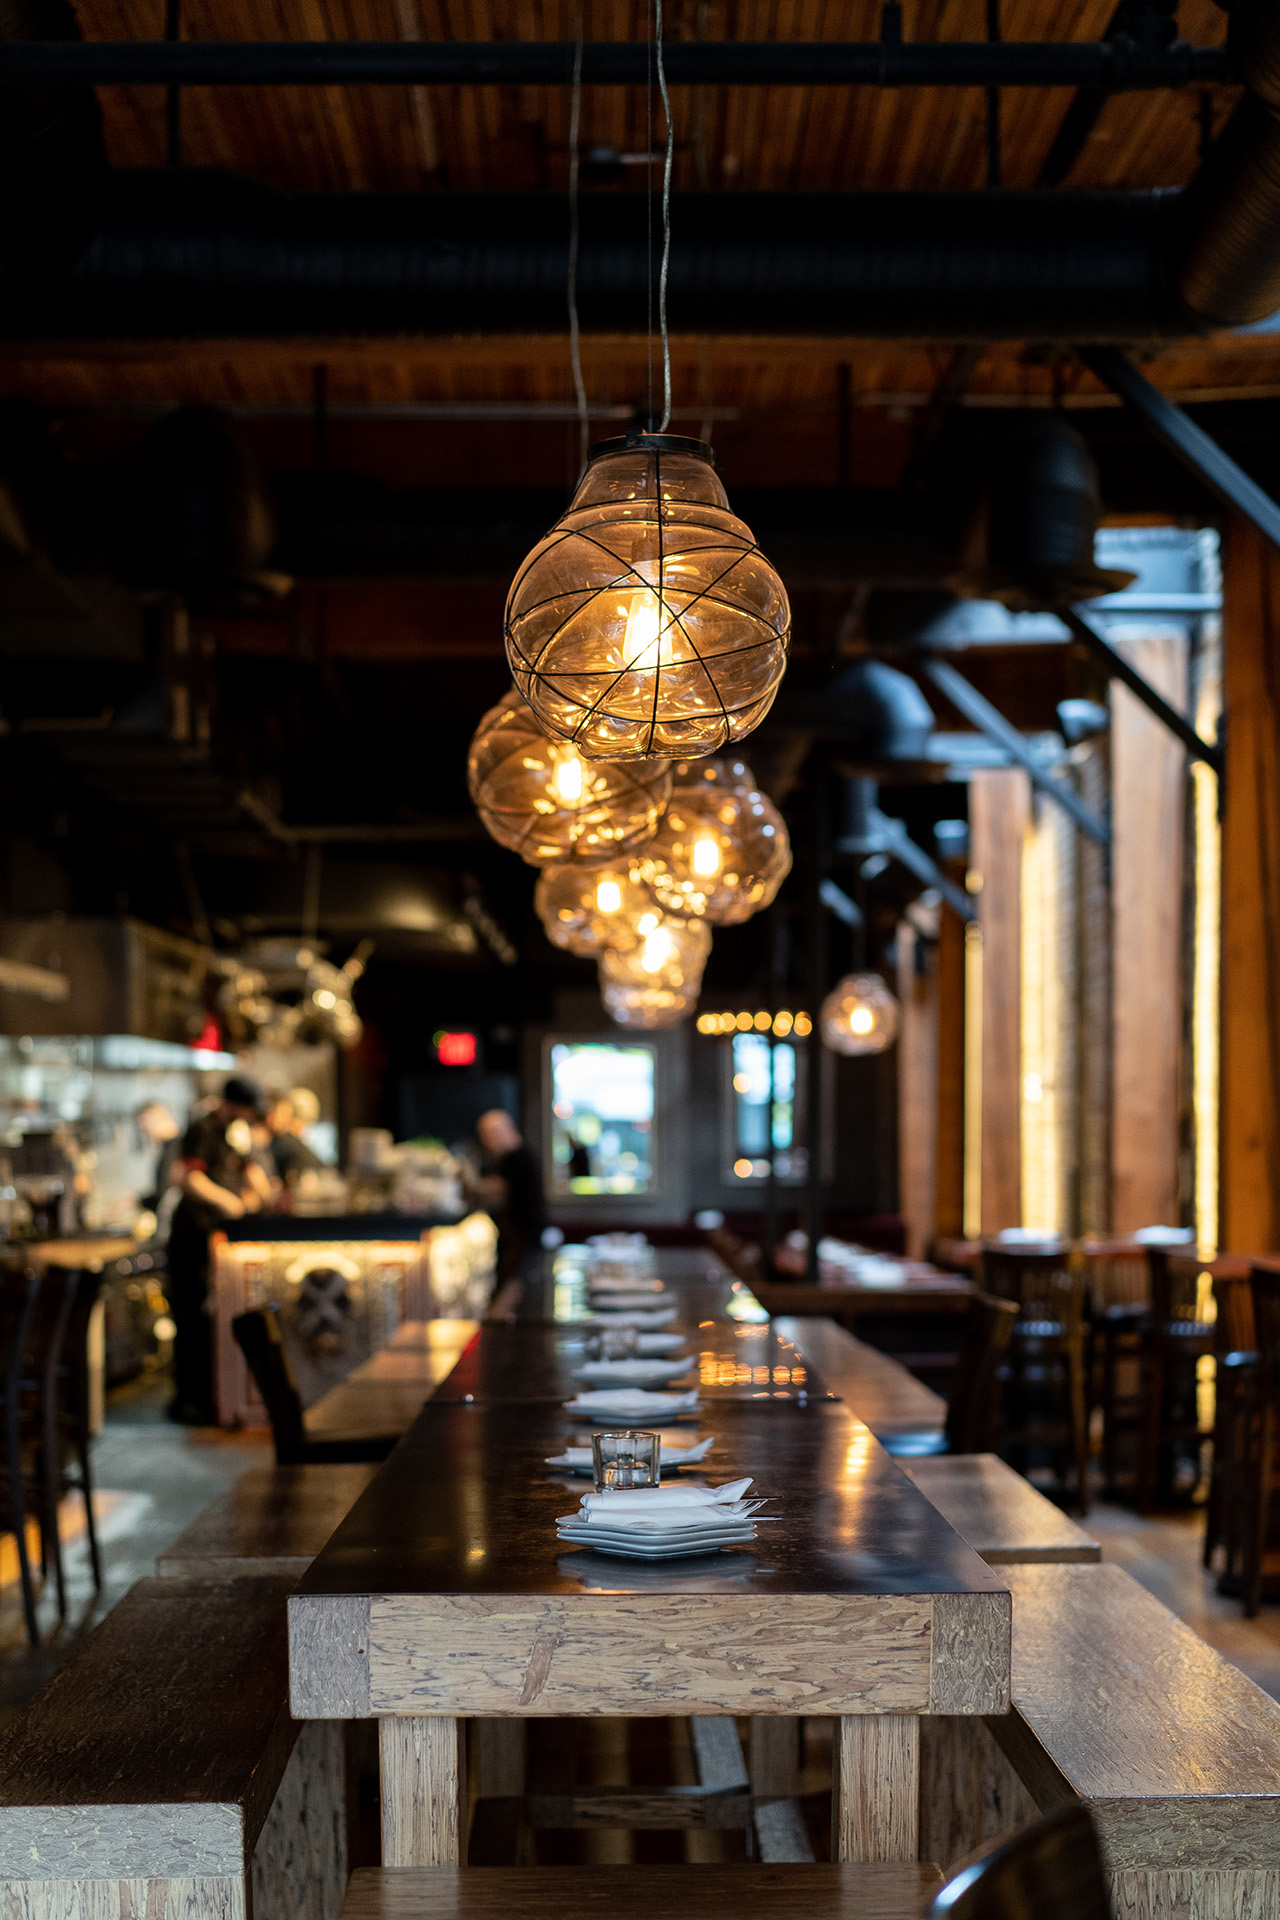 Hand-blown glass chandeliers over the central communal table.